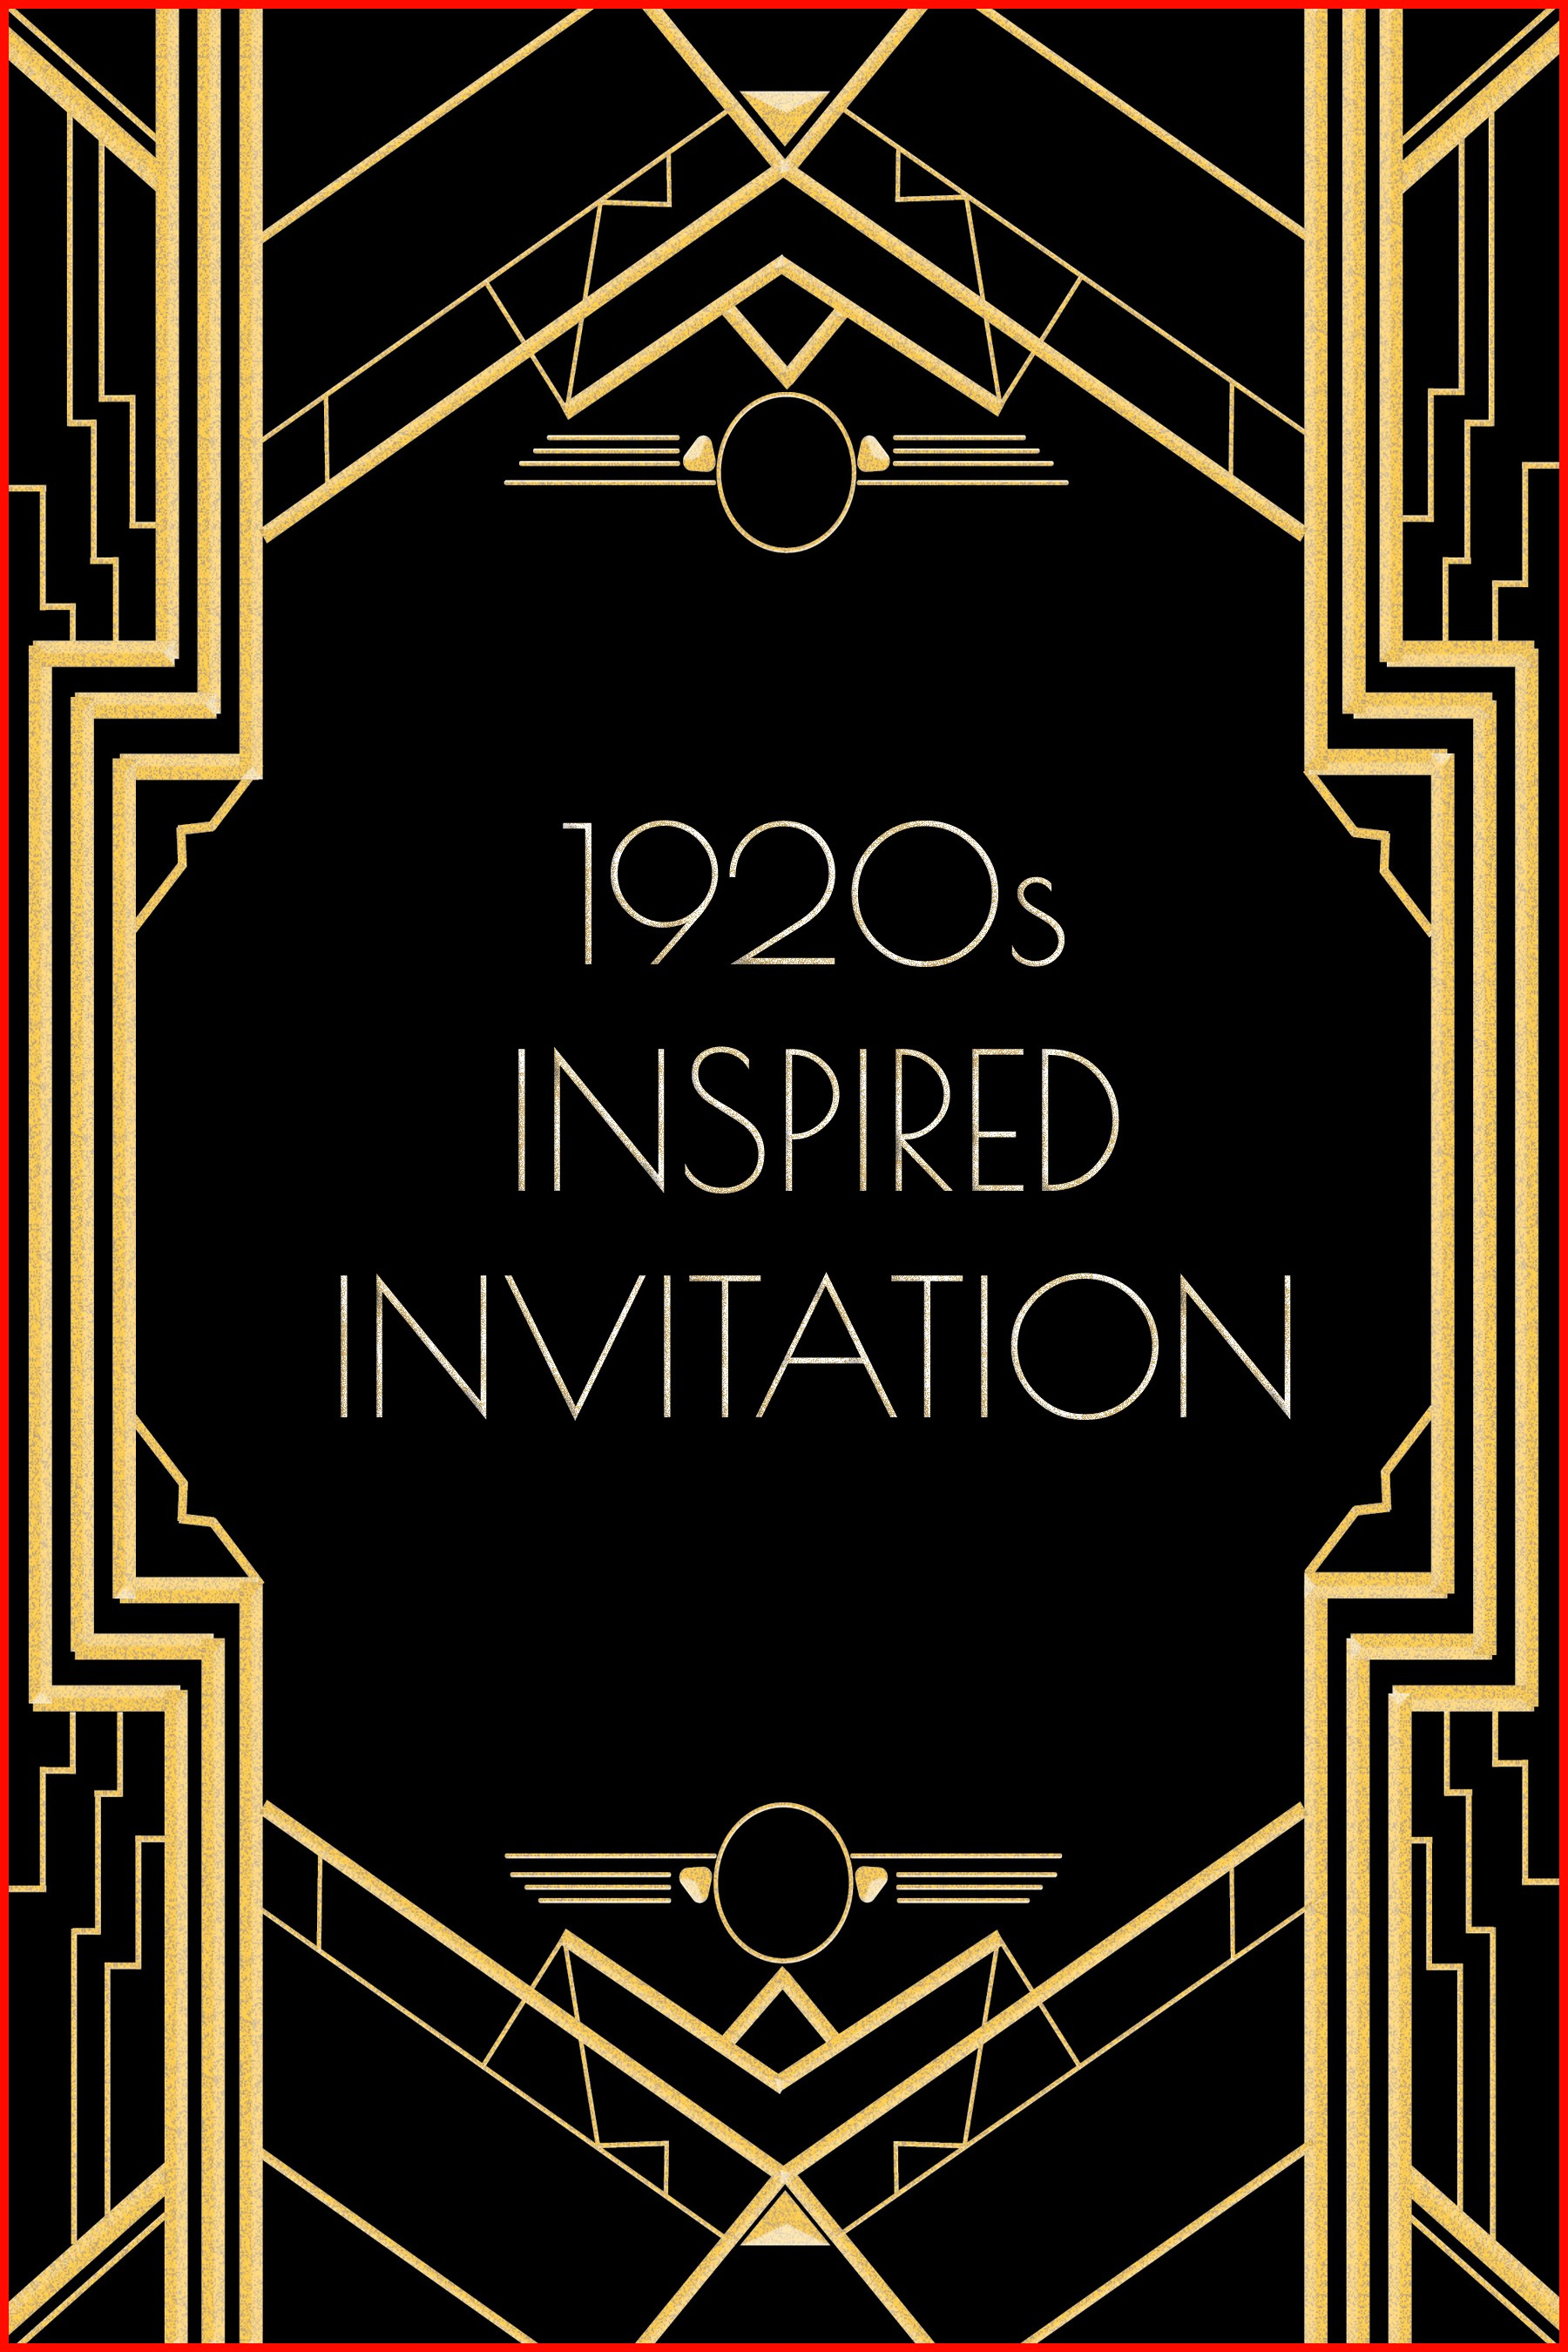 Great Gatsby Invitation Template Free Download 14960 20 S Years Cabaret Photos